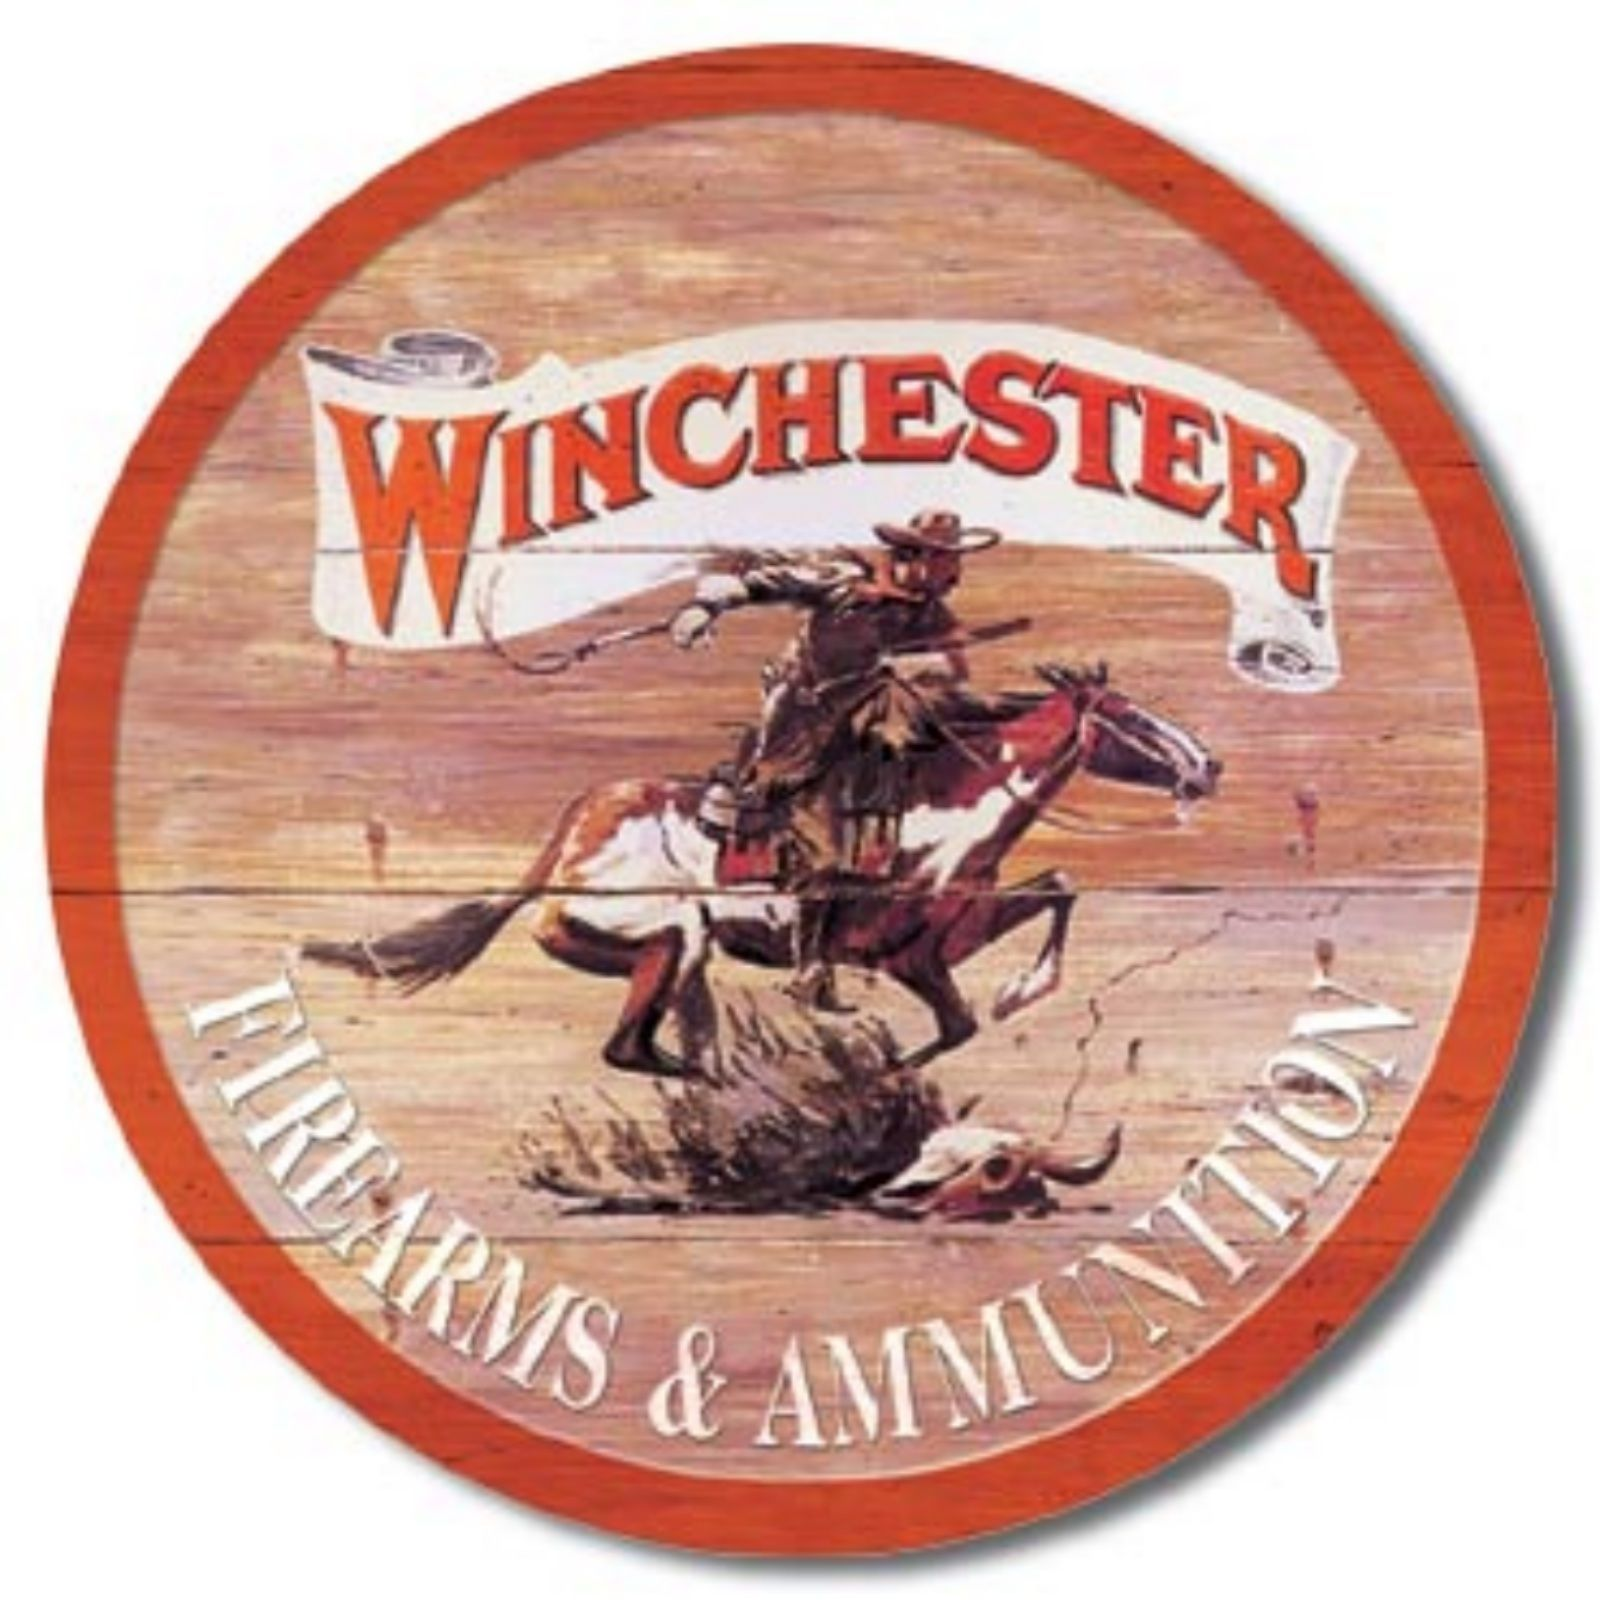 Winchester Express Round Metal Sign Tin New Vintage Style USA #975